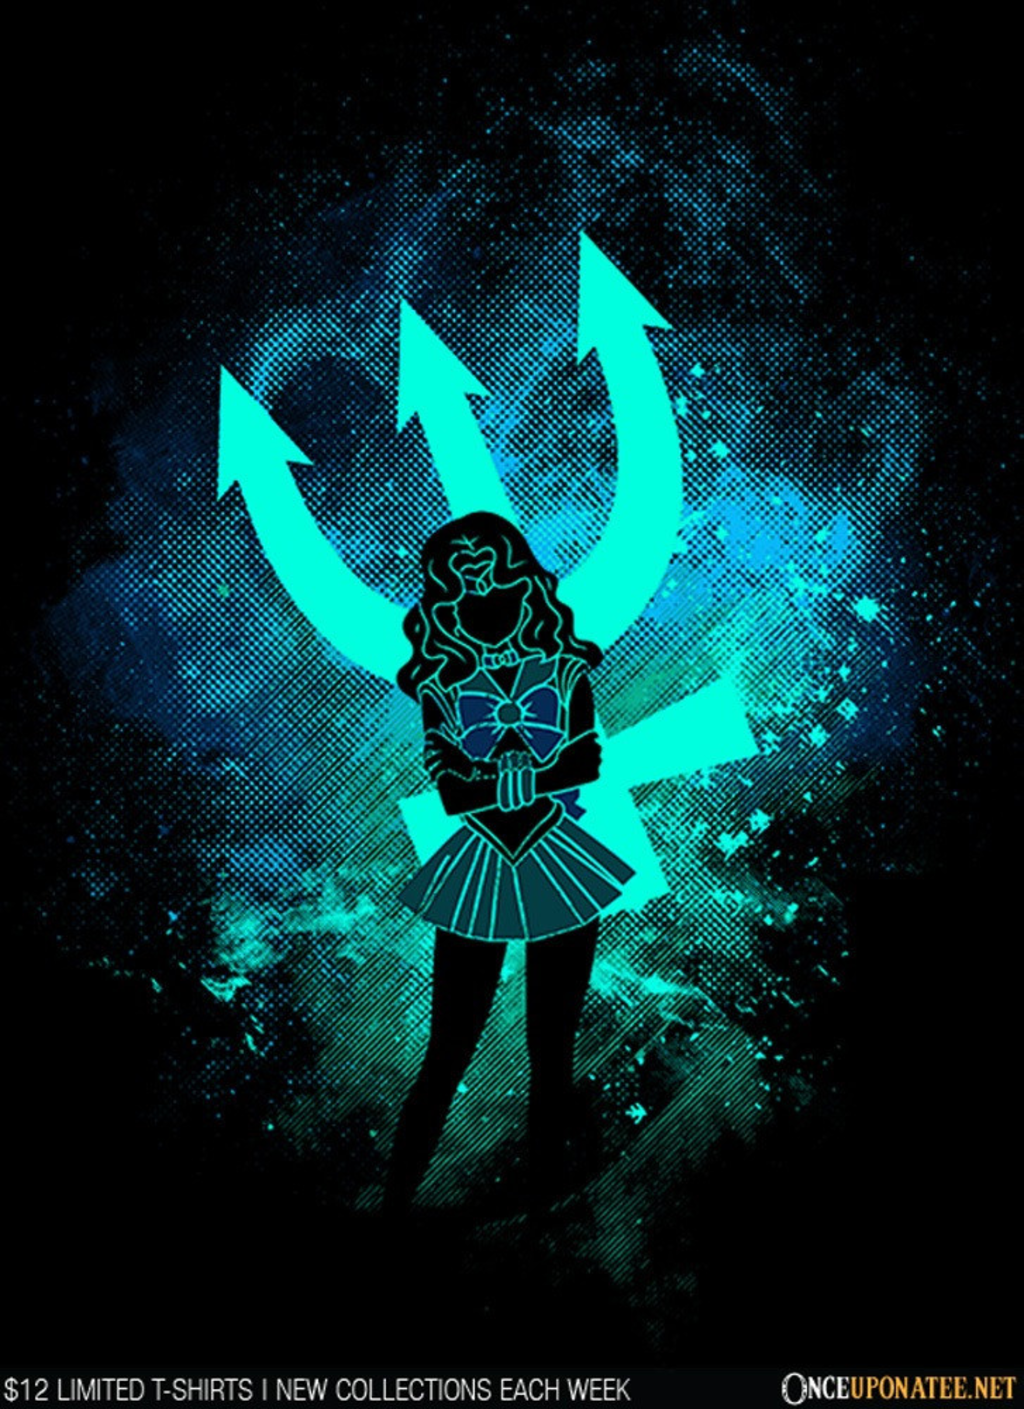 Once Upon a Tee: Neptune Art